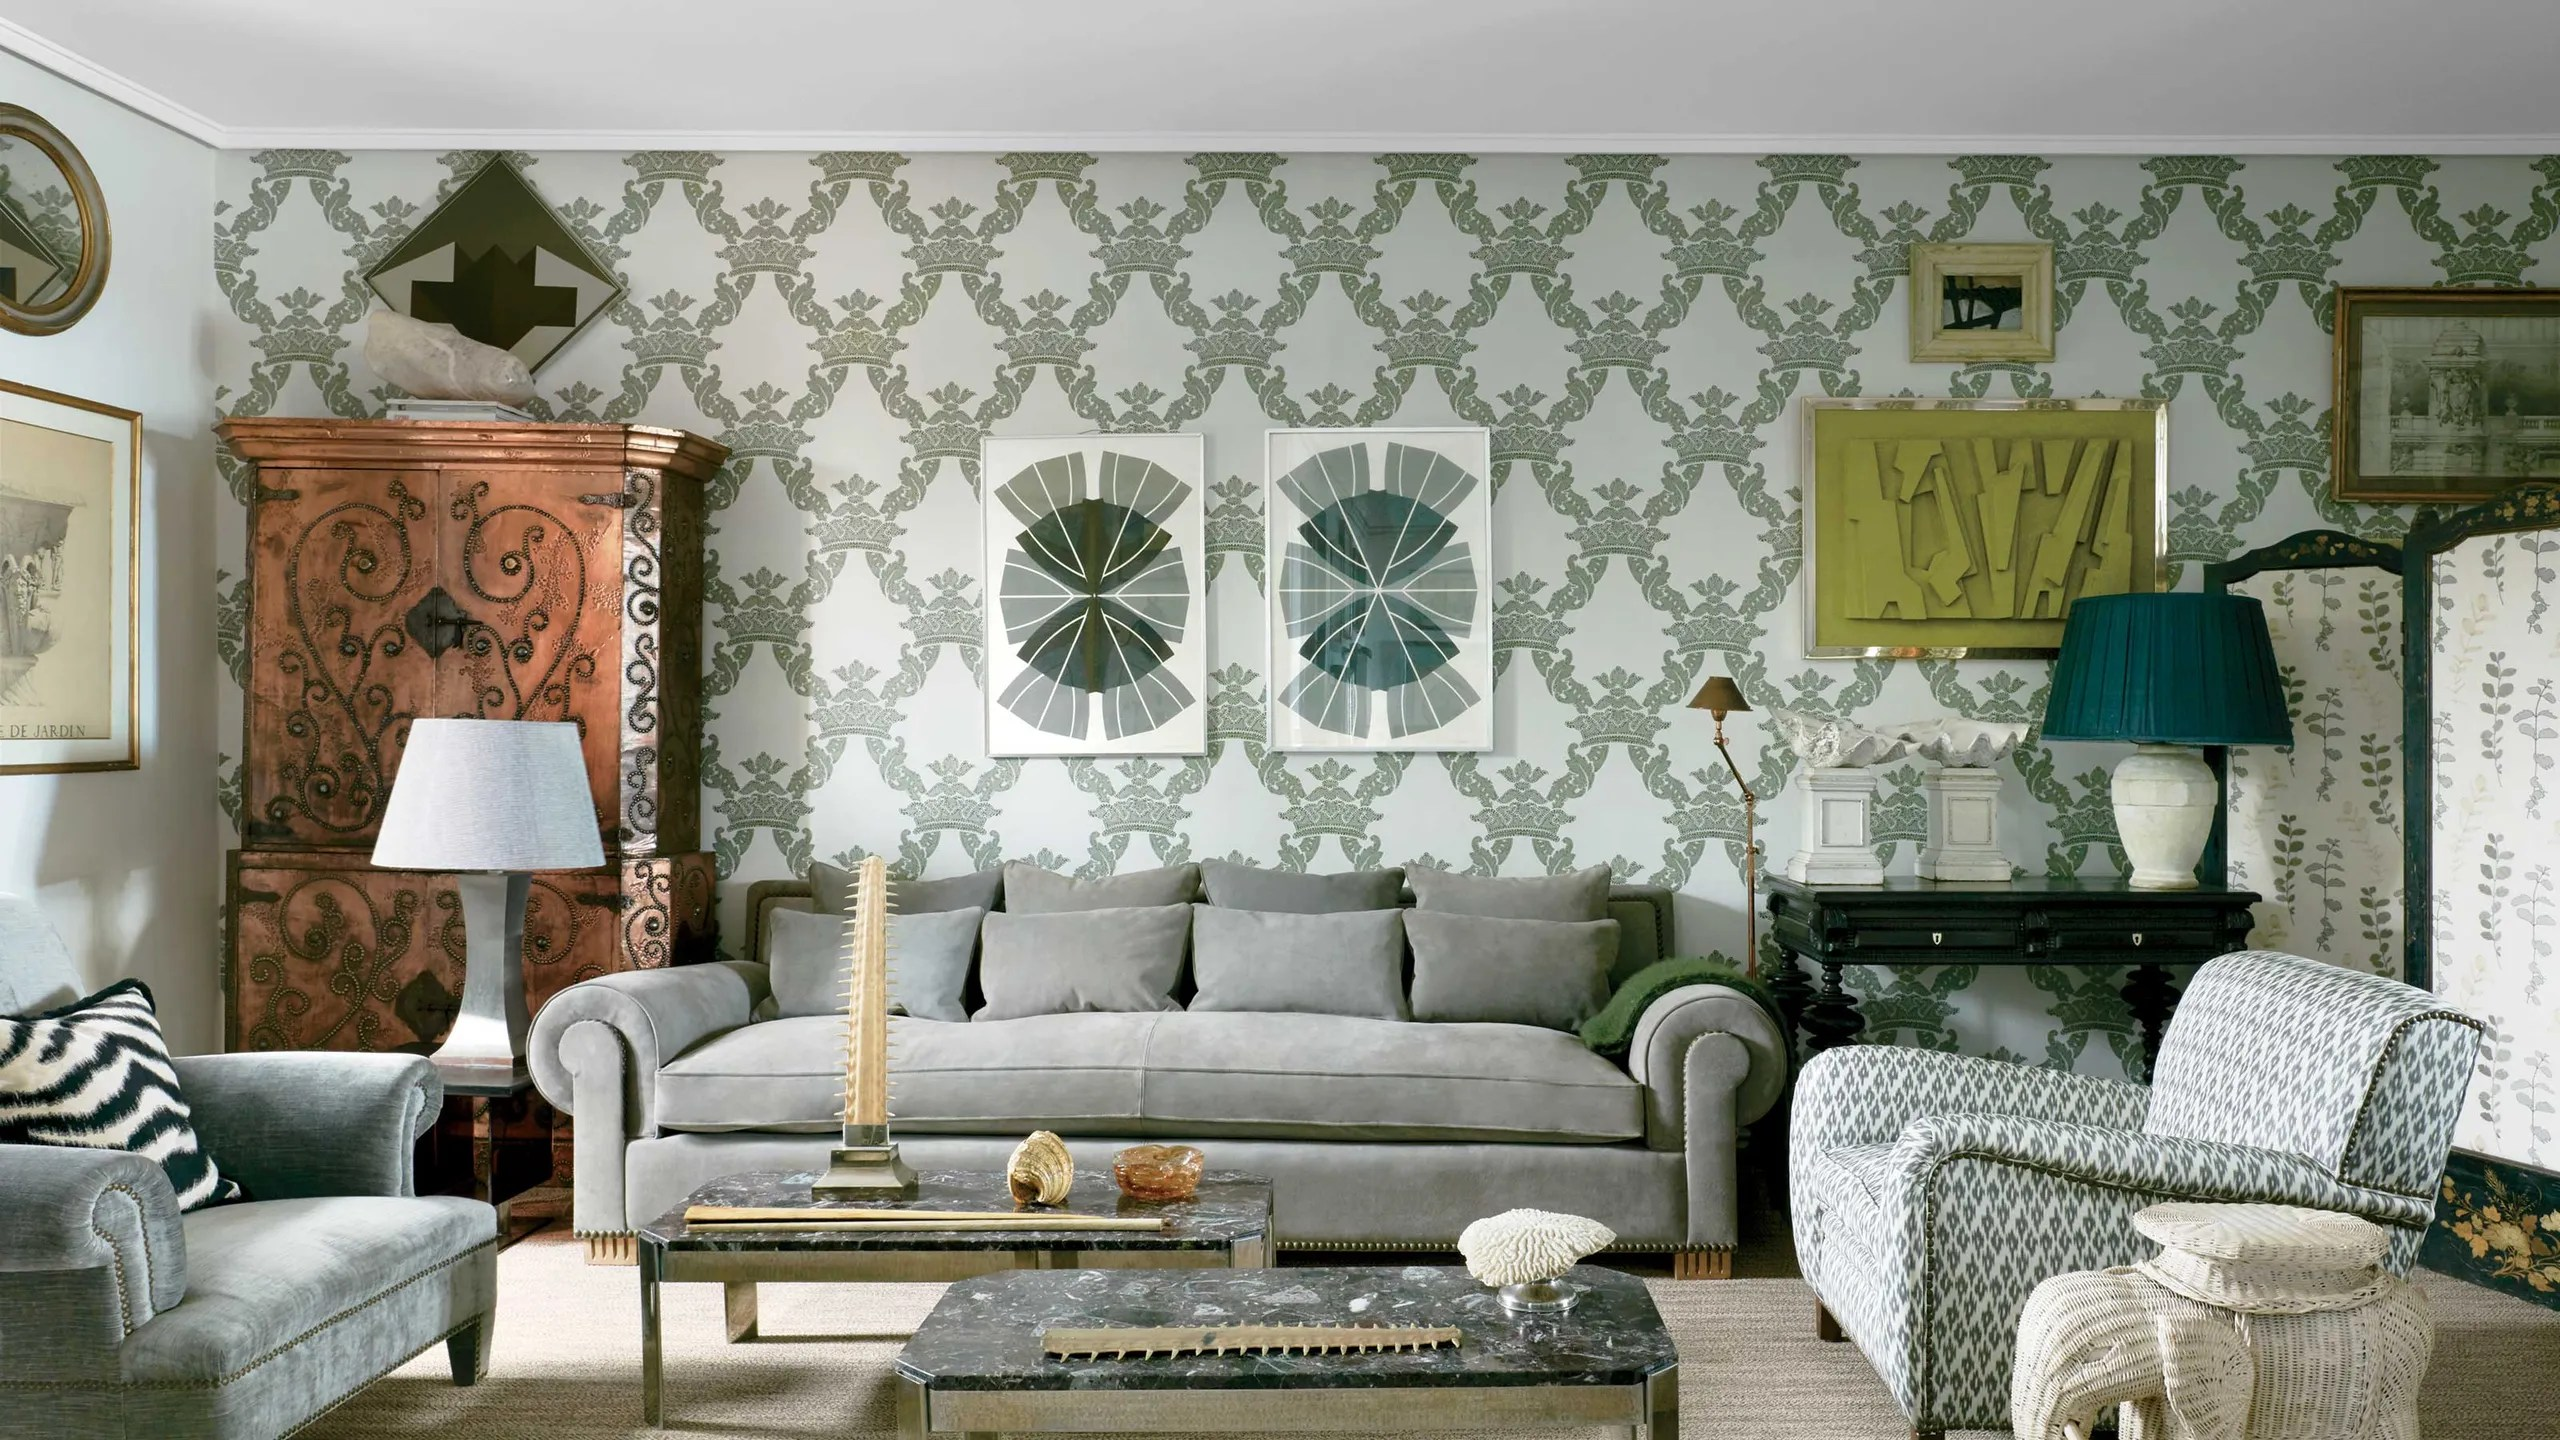 What Is Upholstery And How Do You Choose The Best Fabric For